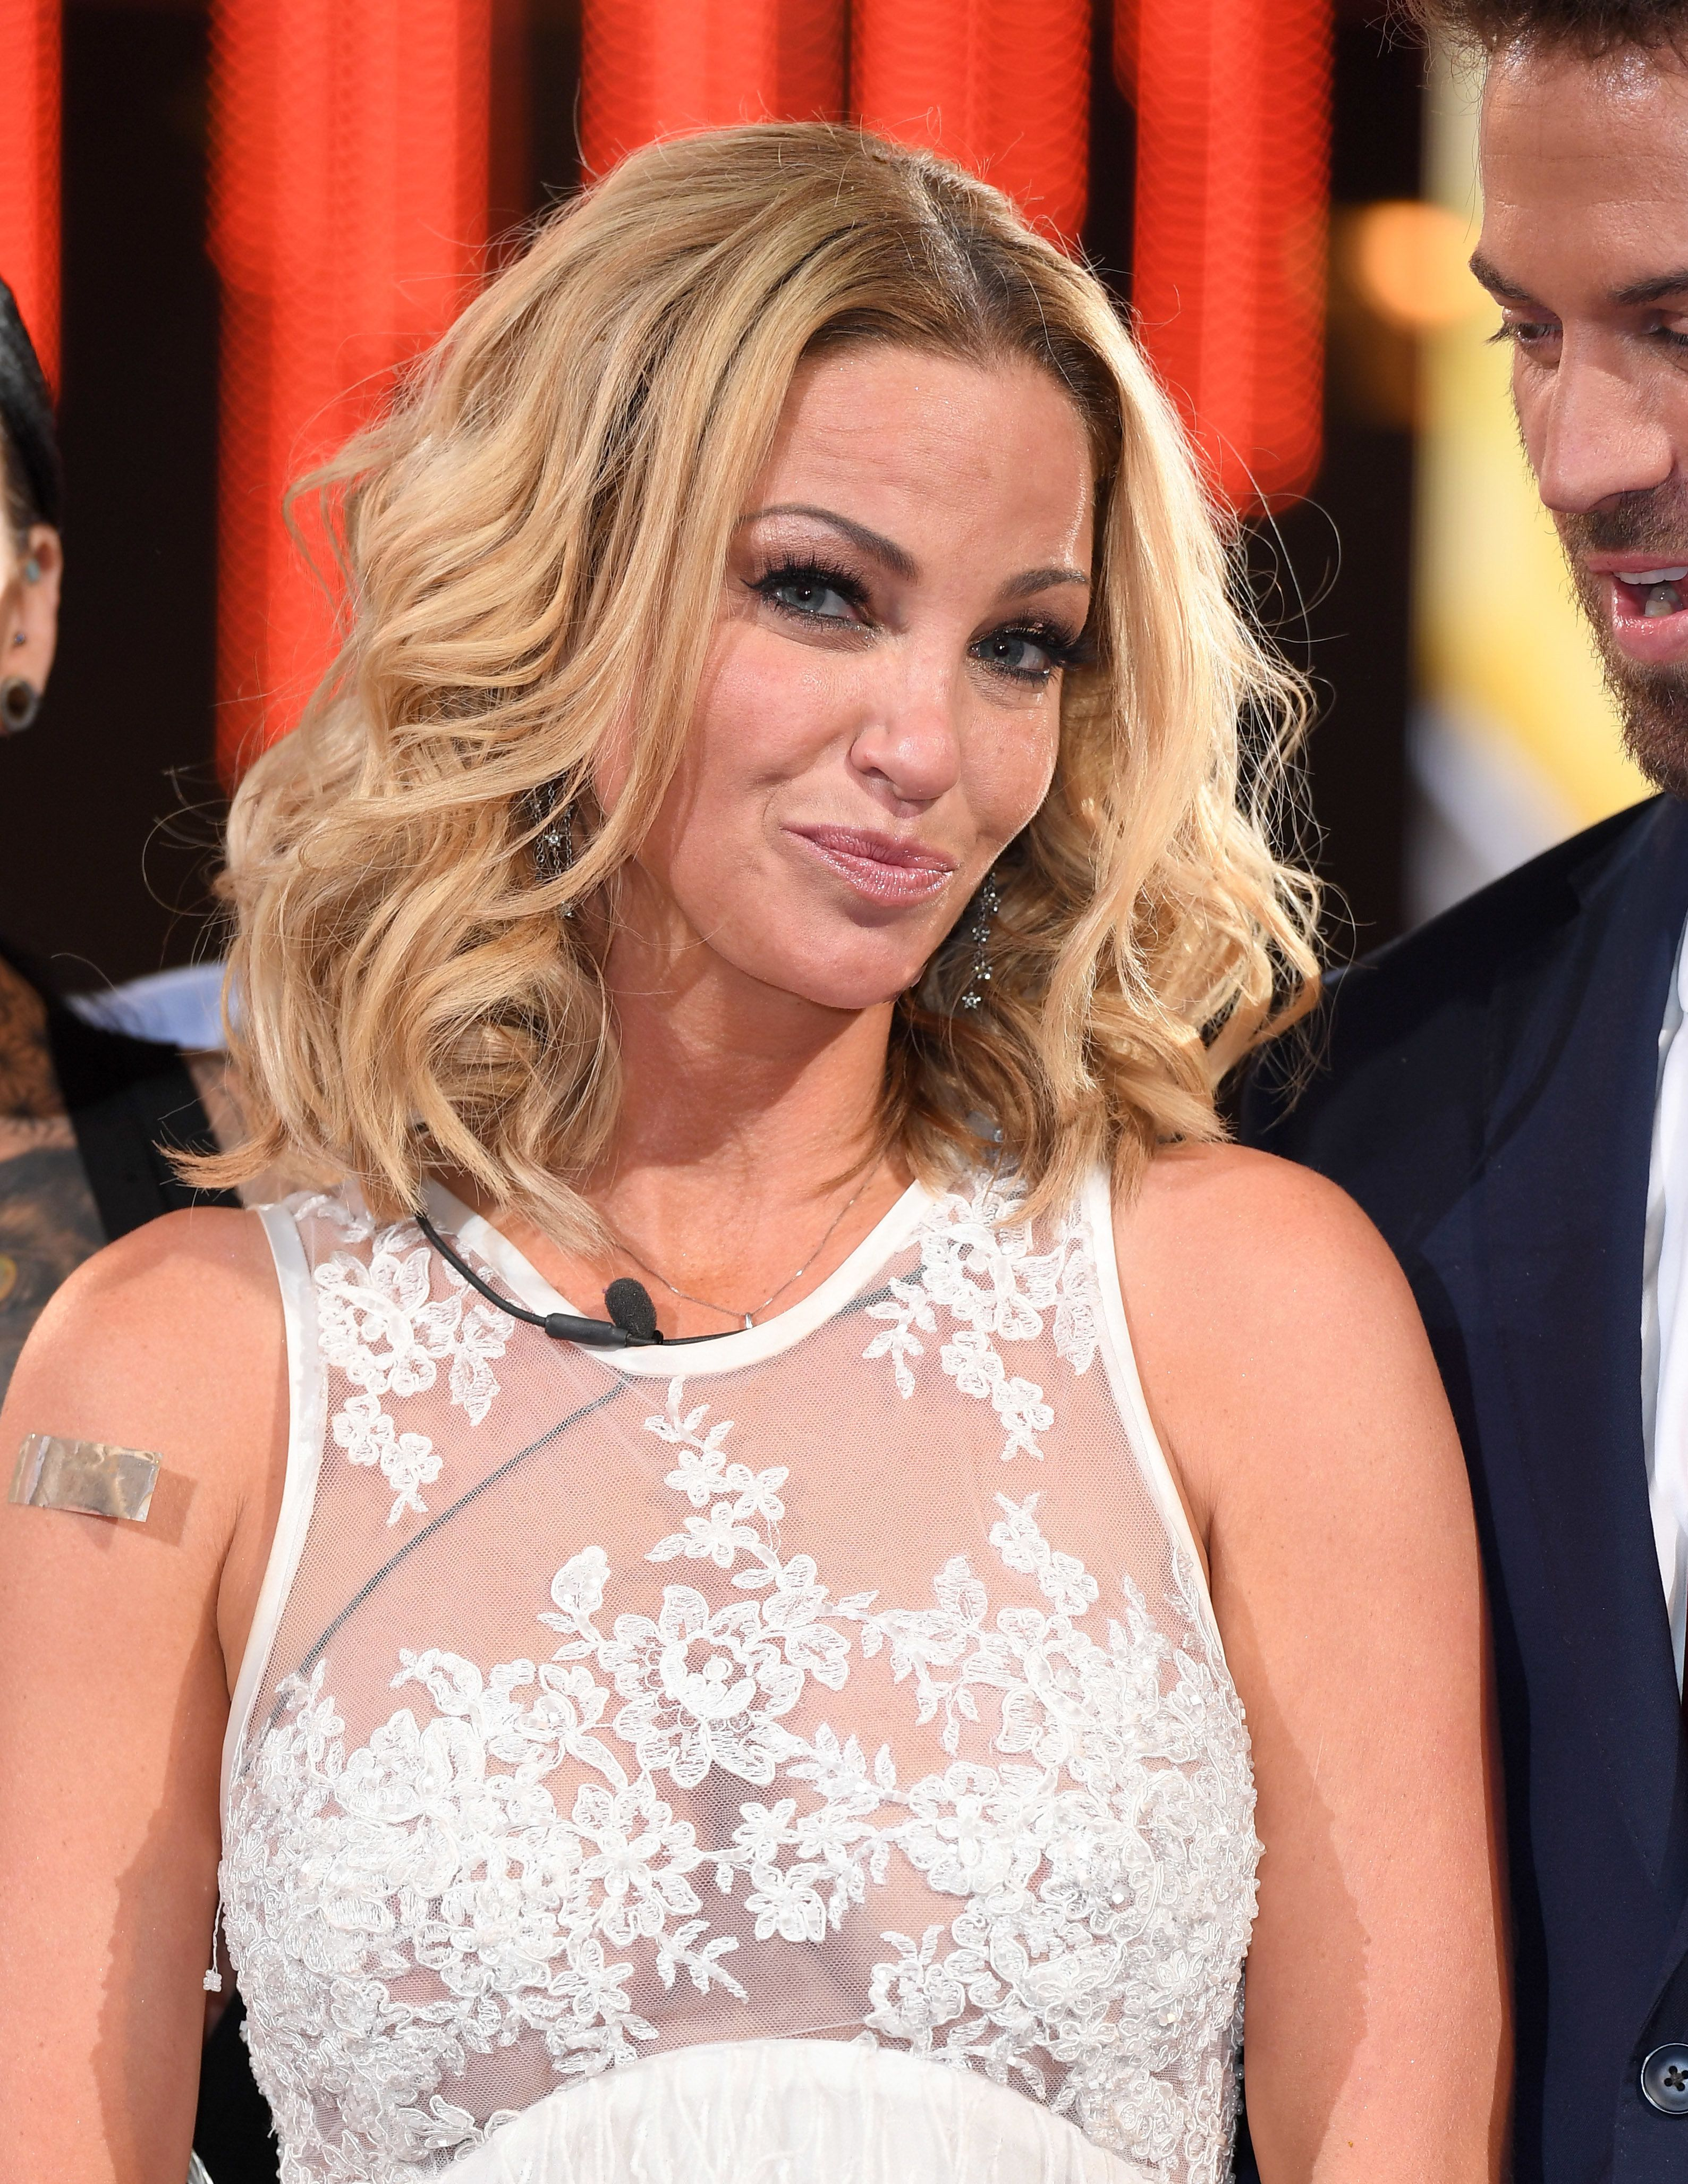 Sam Thompson Opens Up About 'Special Treatment' Received By Sarah Harding In 'CBB'